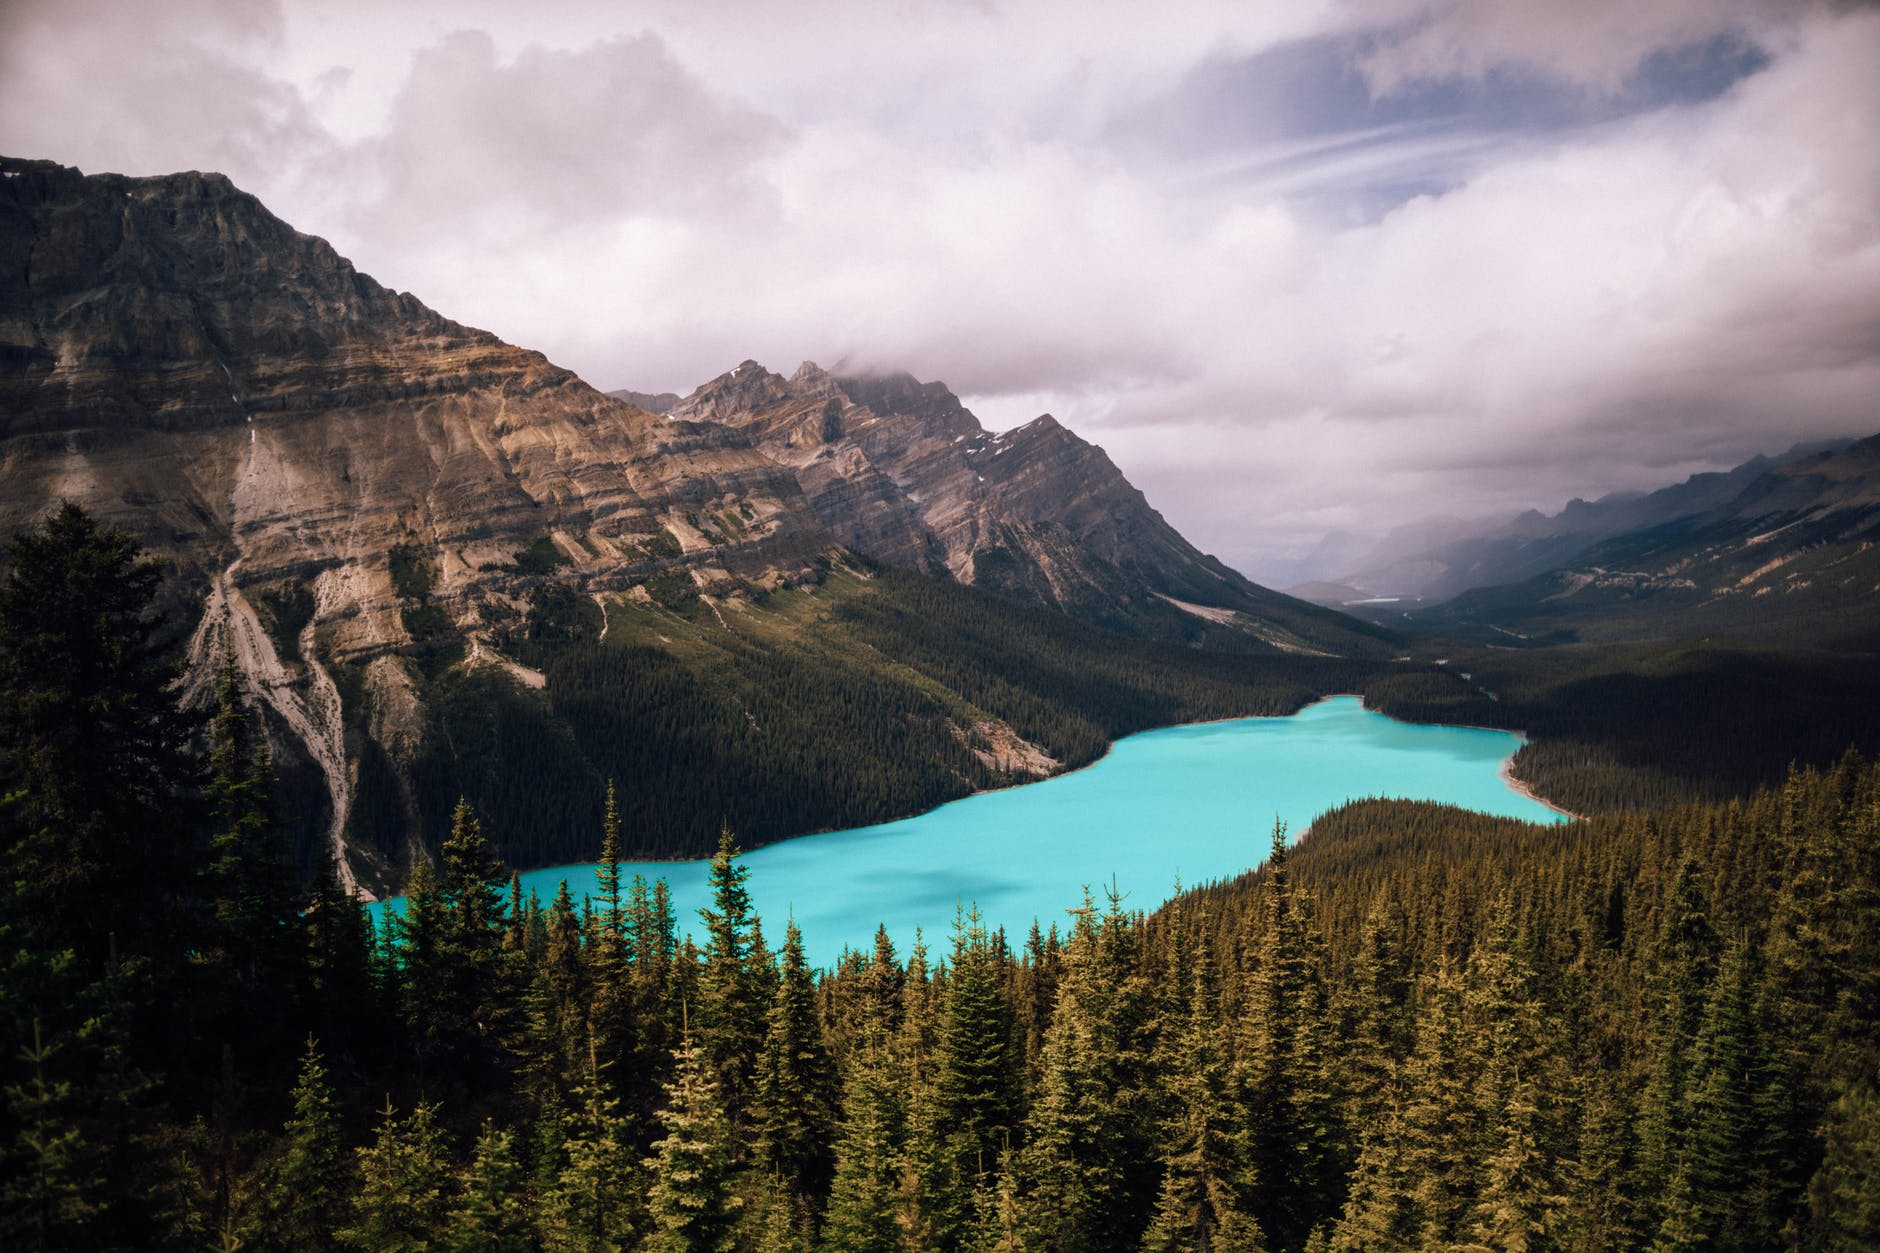 Peyto Lake is the most photographed spot in the Canadian Rockies. It requires a hike to the summit. (Pexels)